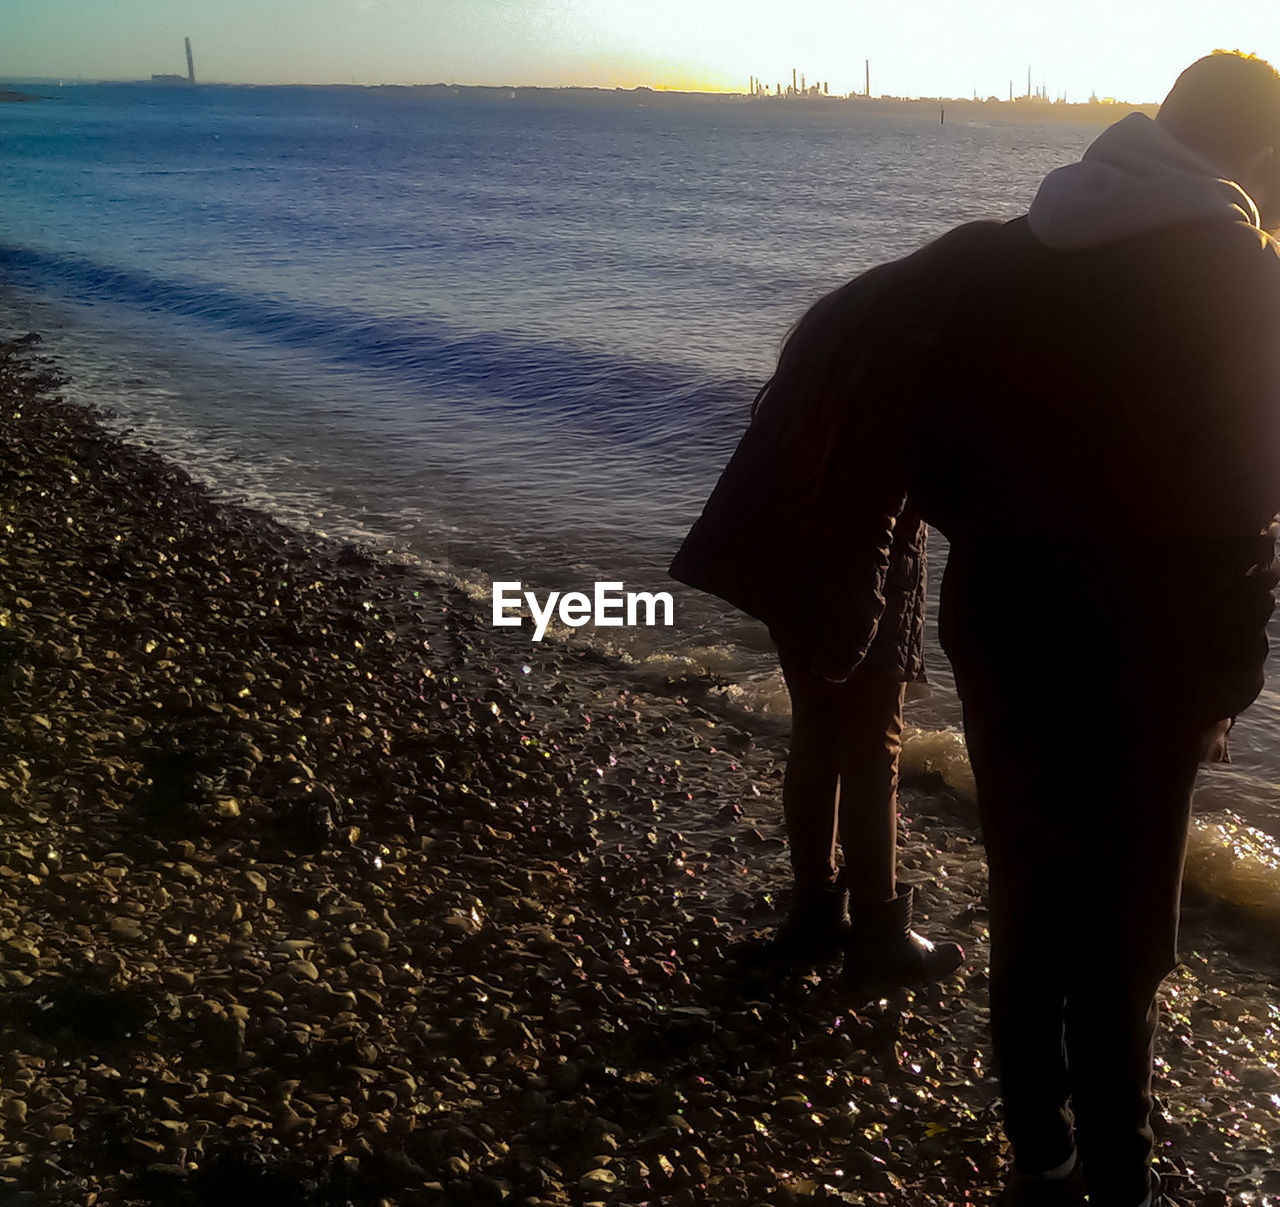 sea, real people, water, standing, nature, men, rear view, horizon over water, two people, togetherness, love, beauty in nature, scenics, lifestyles, leisure activity, beach, women, day, full length, outdoors, sky, people